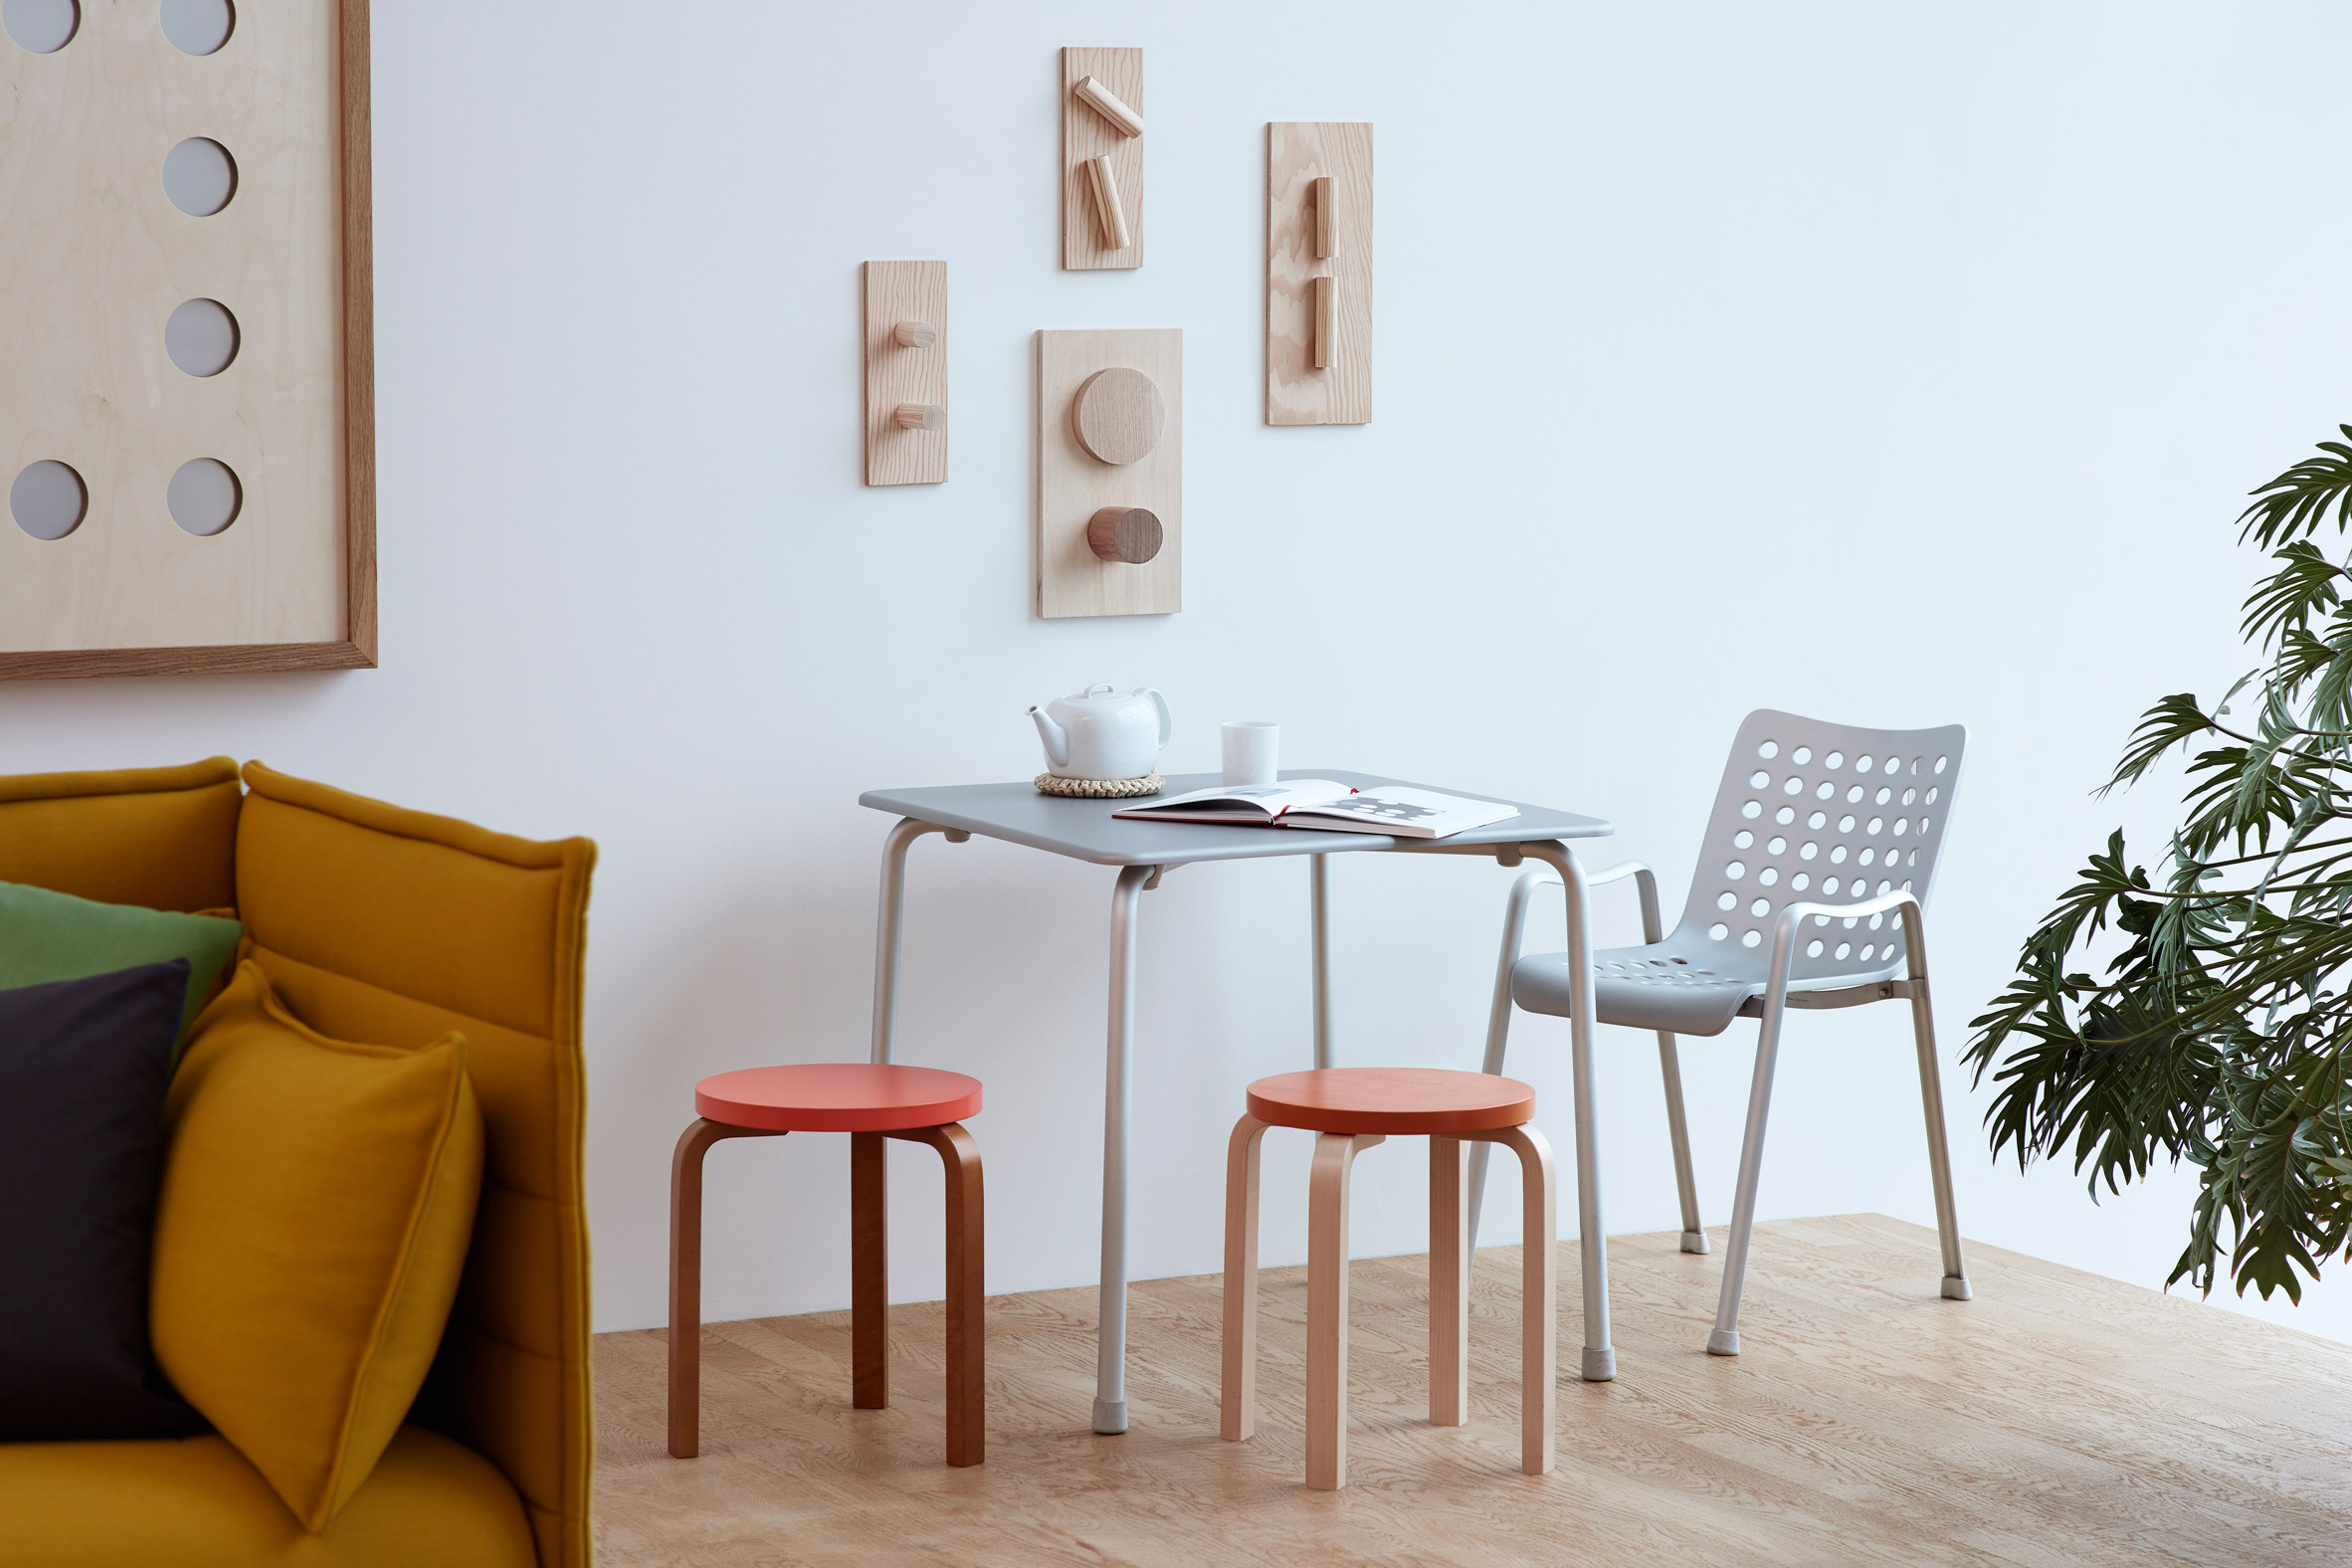 jasper-morrison-vitrahaus-design-interiors-homeware-furniture-installation_dezeen_2364_col_5.jpg